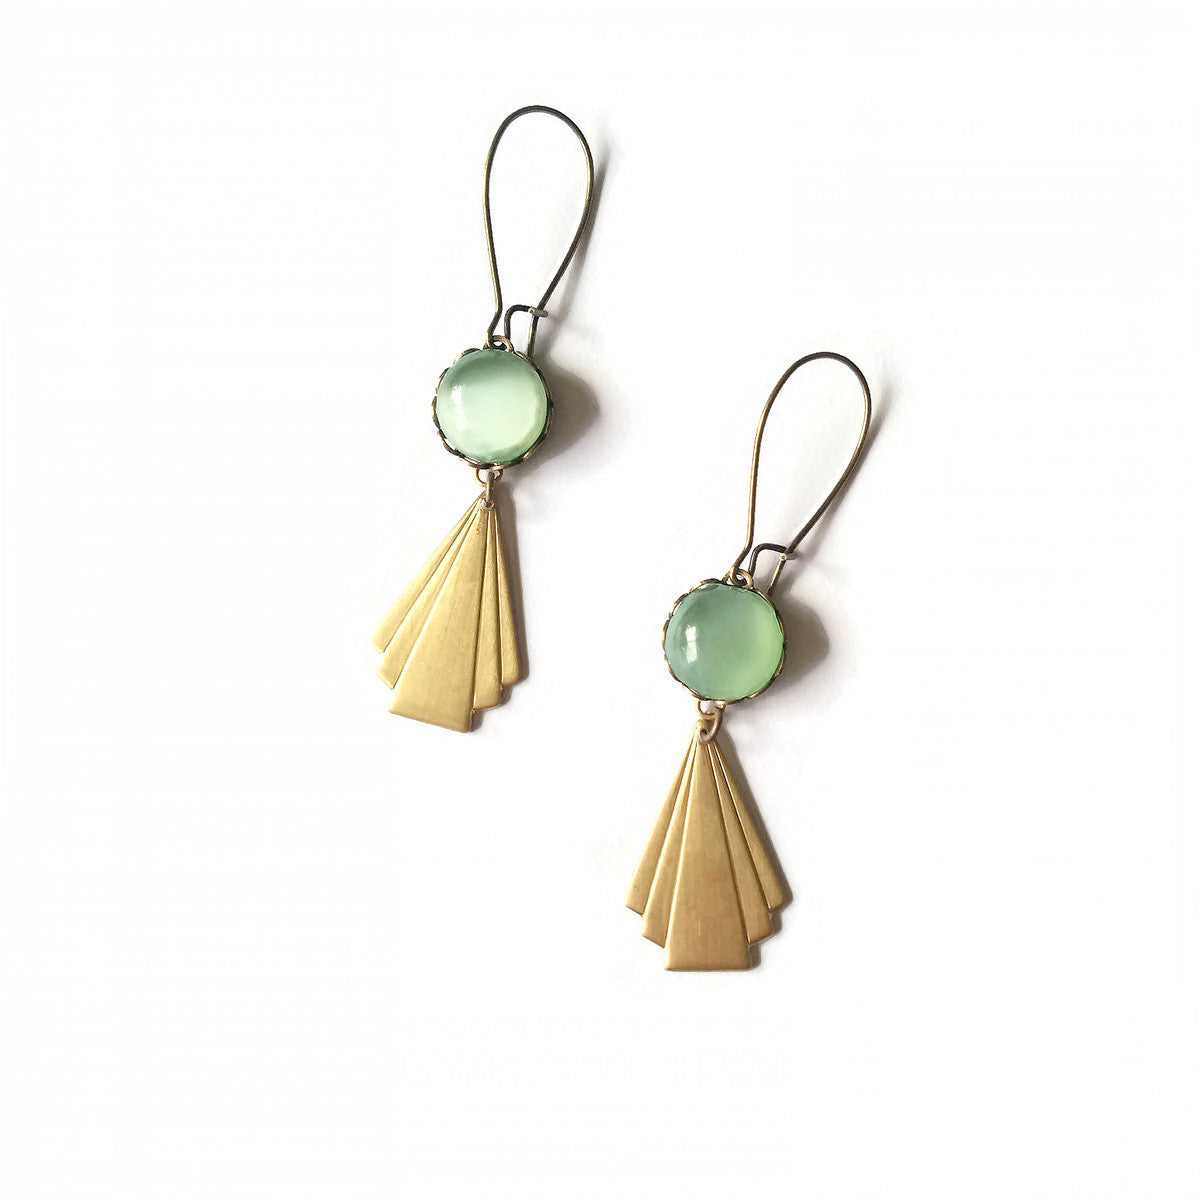 art deco style earrings in opal green